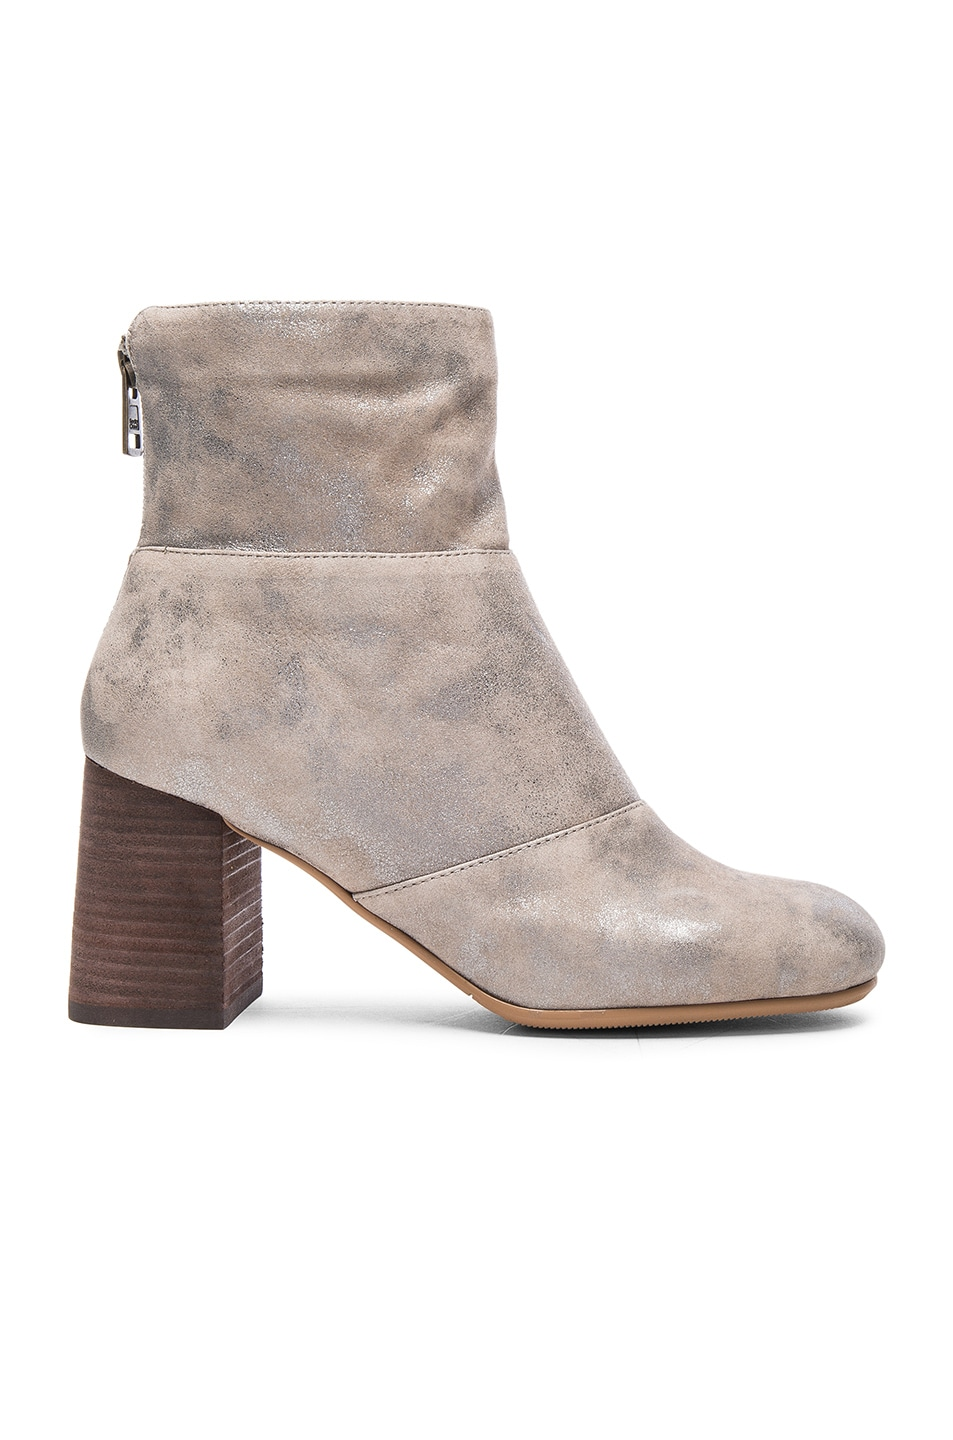 Image 1 of See By Chloe Suede Mila Booties in Pearl Silver Suede